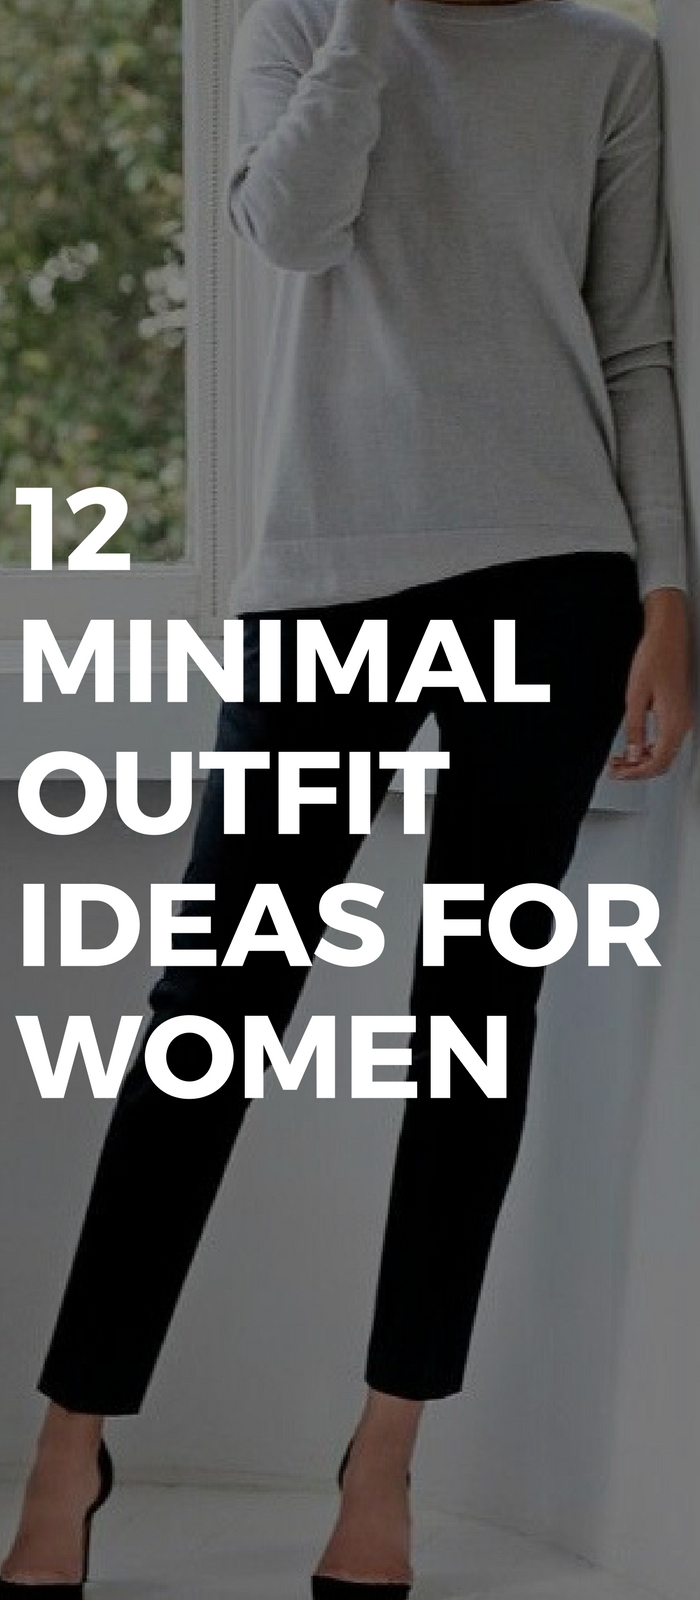 12 Minimal Outfit Ideas For Women That Will Never Go Out Of Style